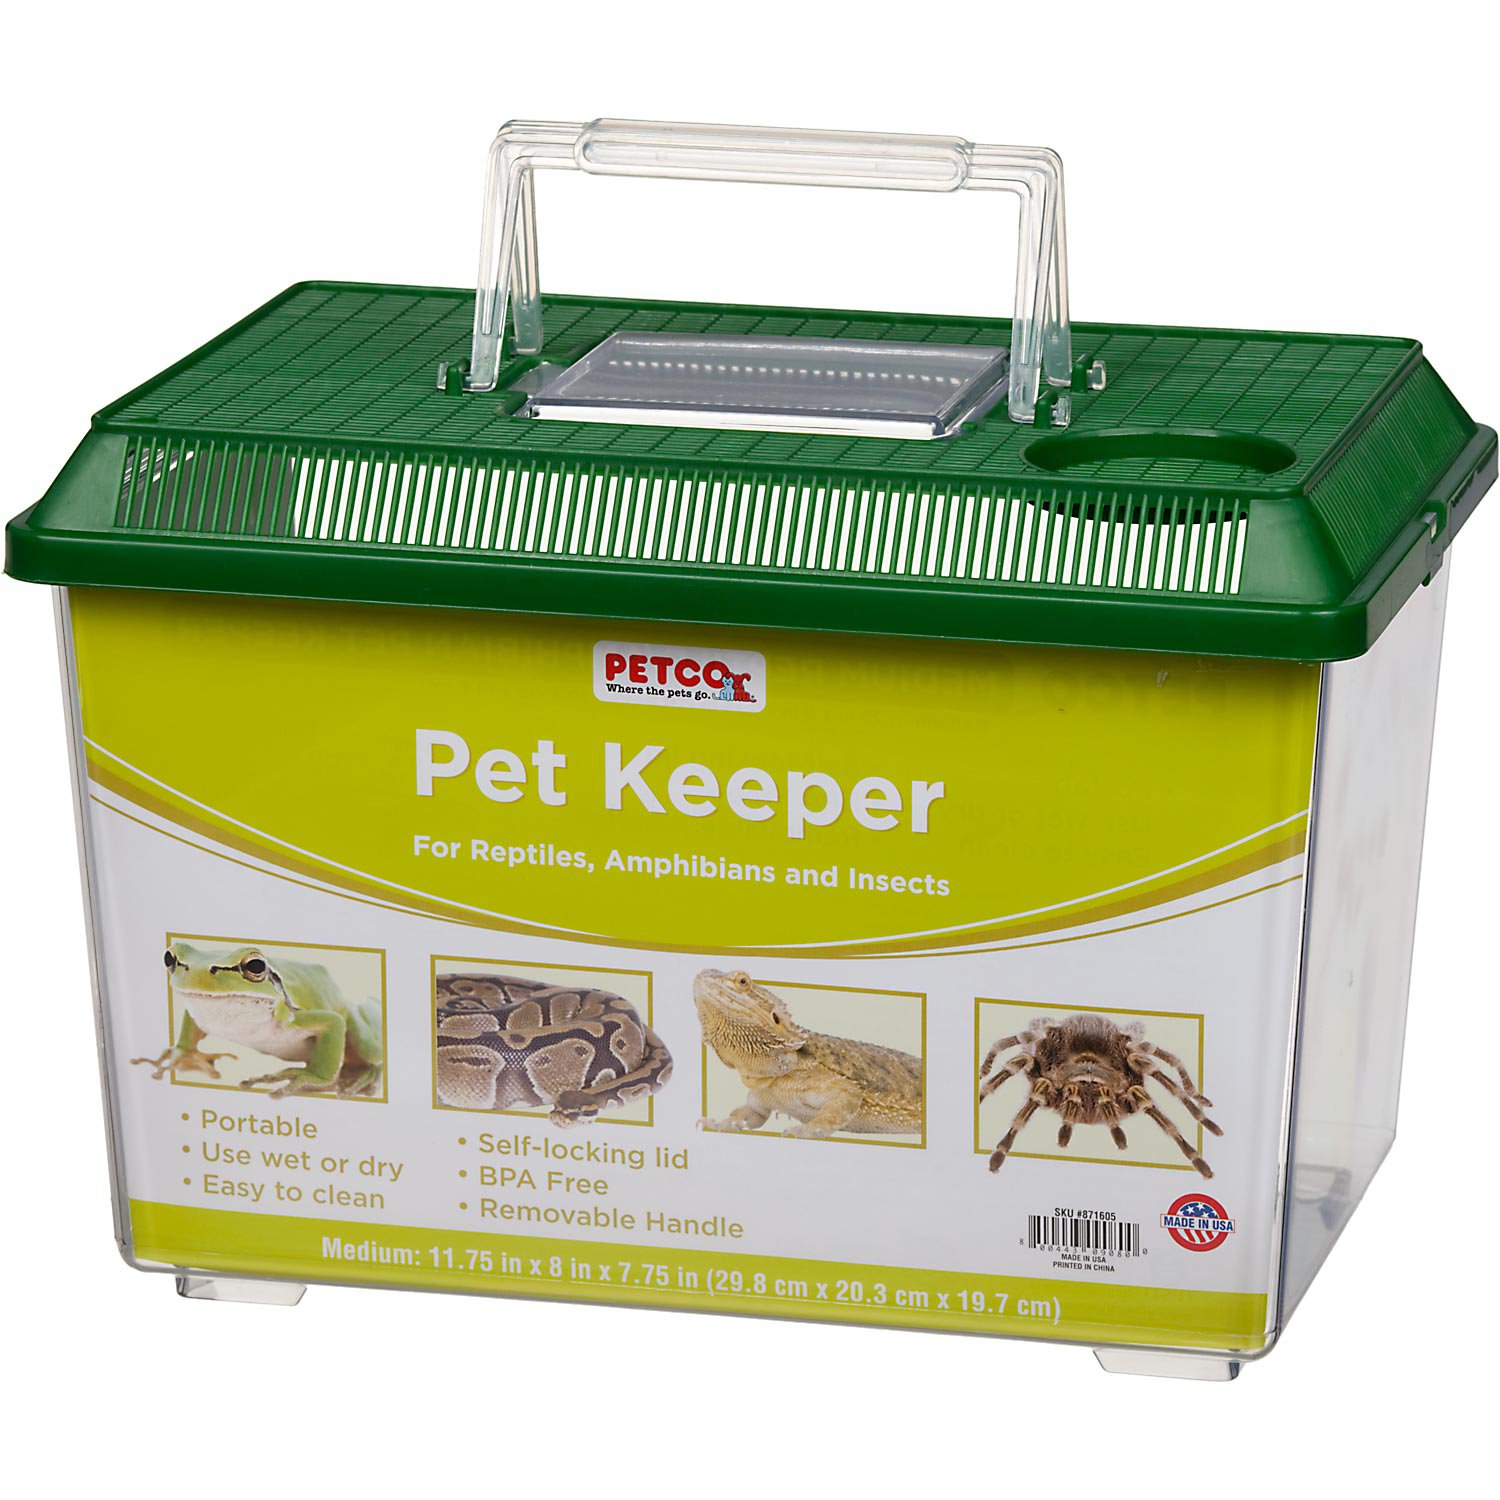 Petco Pet Keeper for Reptiles, Amphibians and Insects